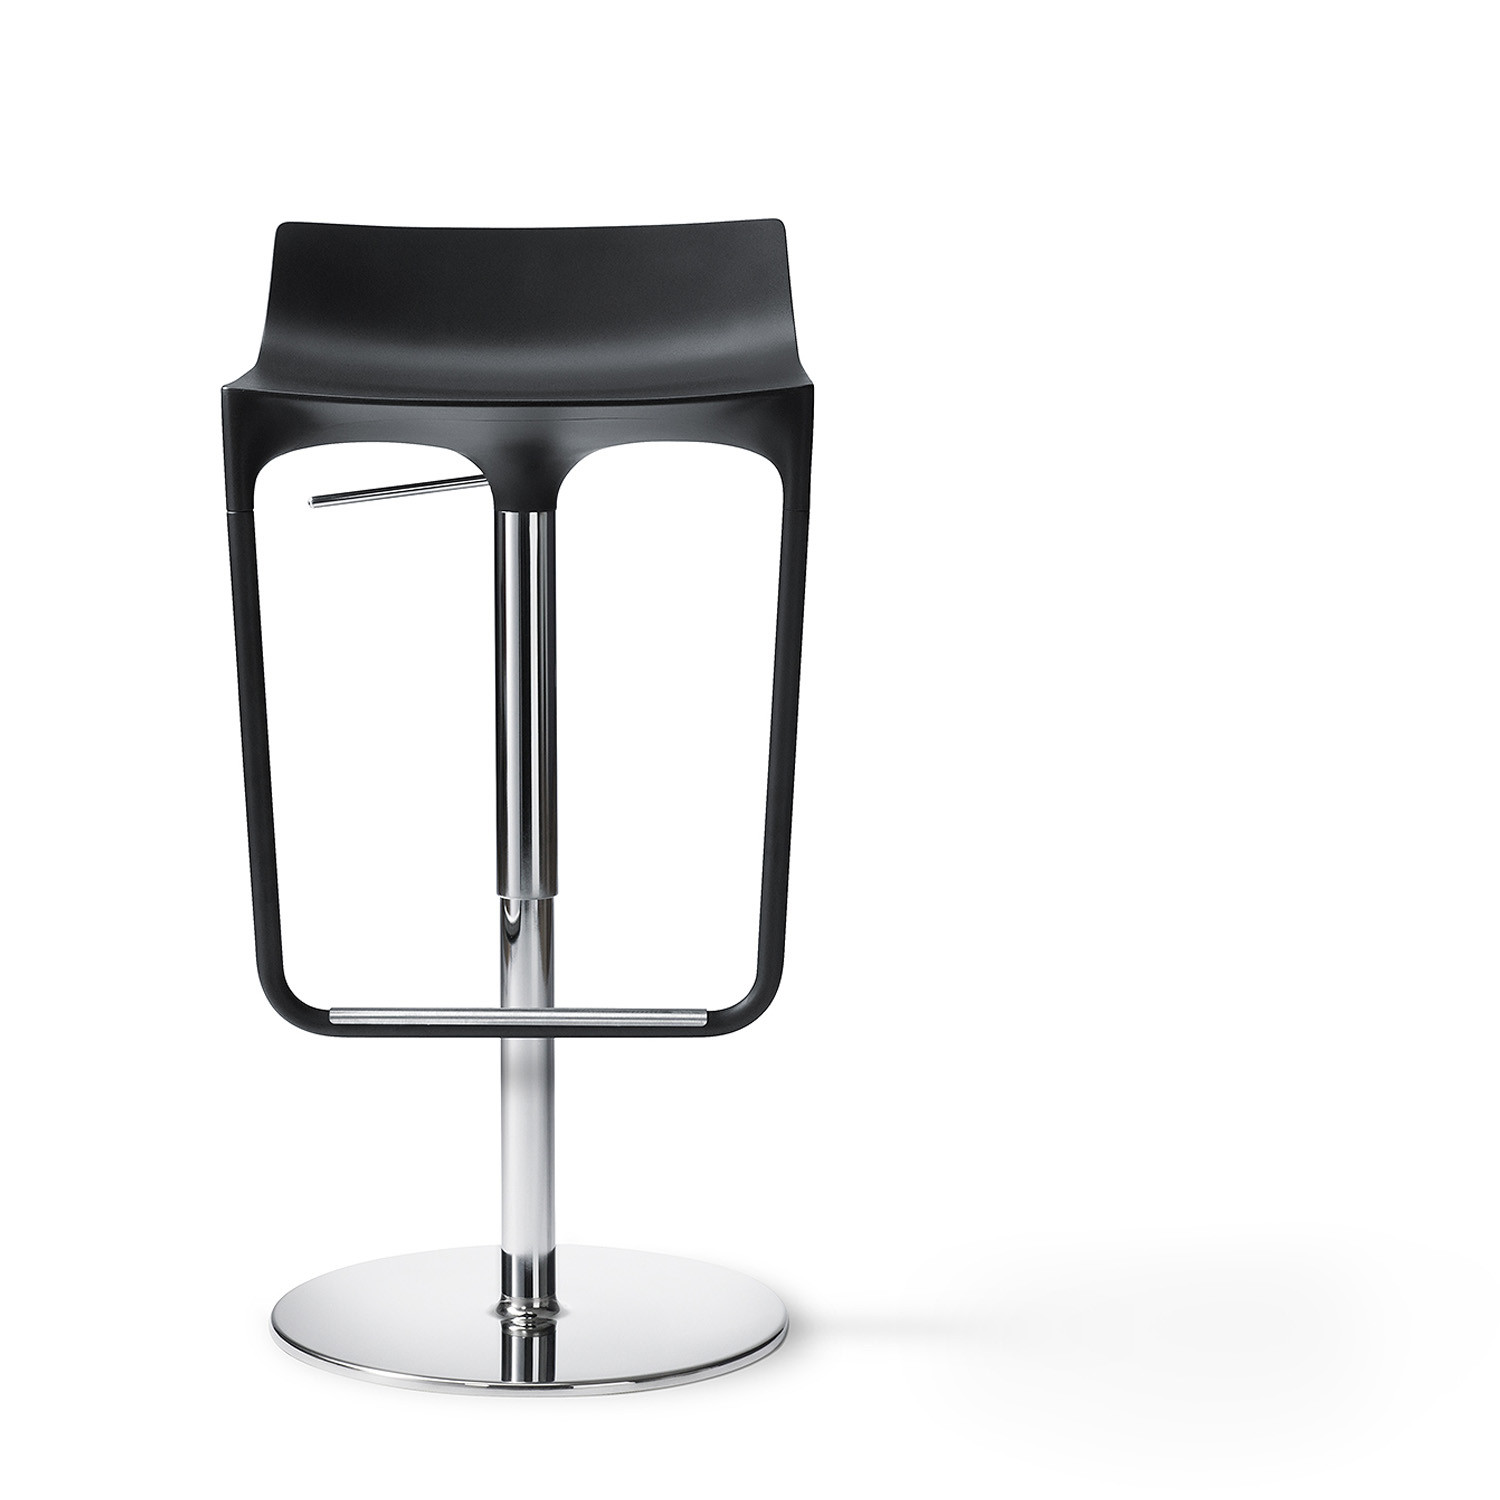 Macao Bar Stool with Footrest